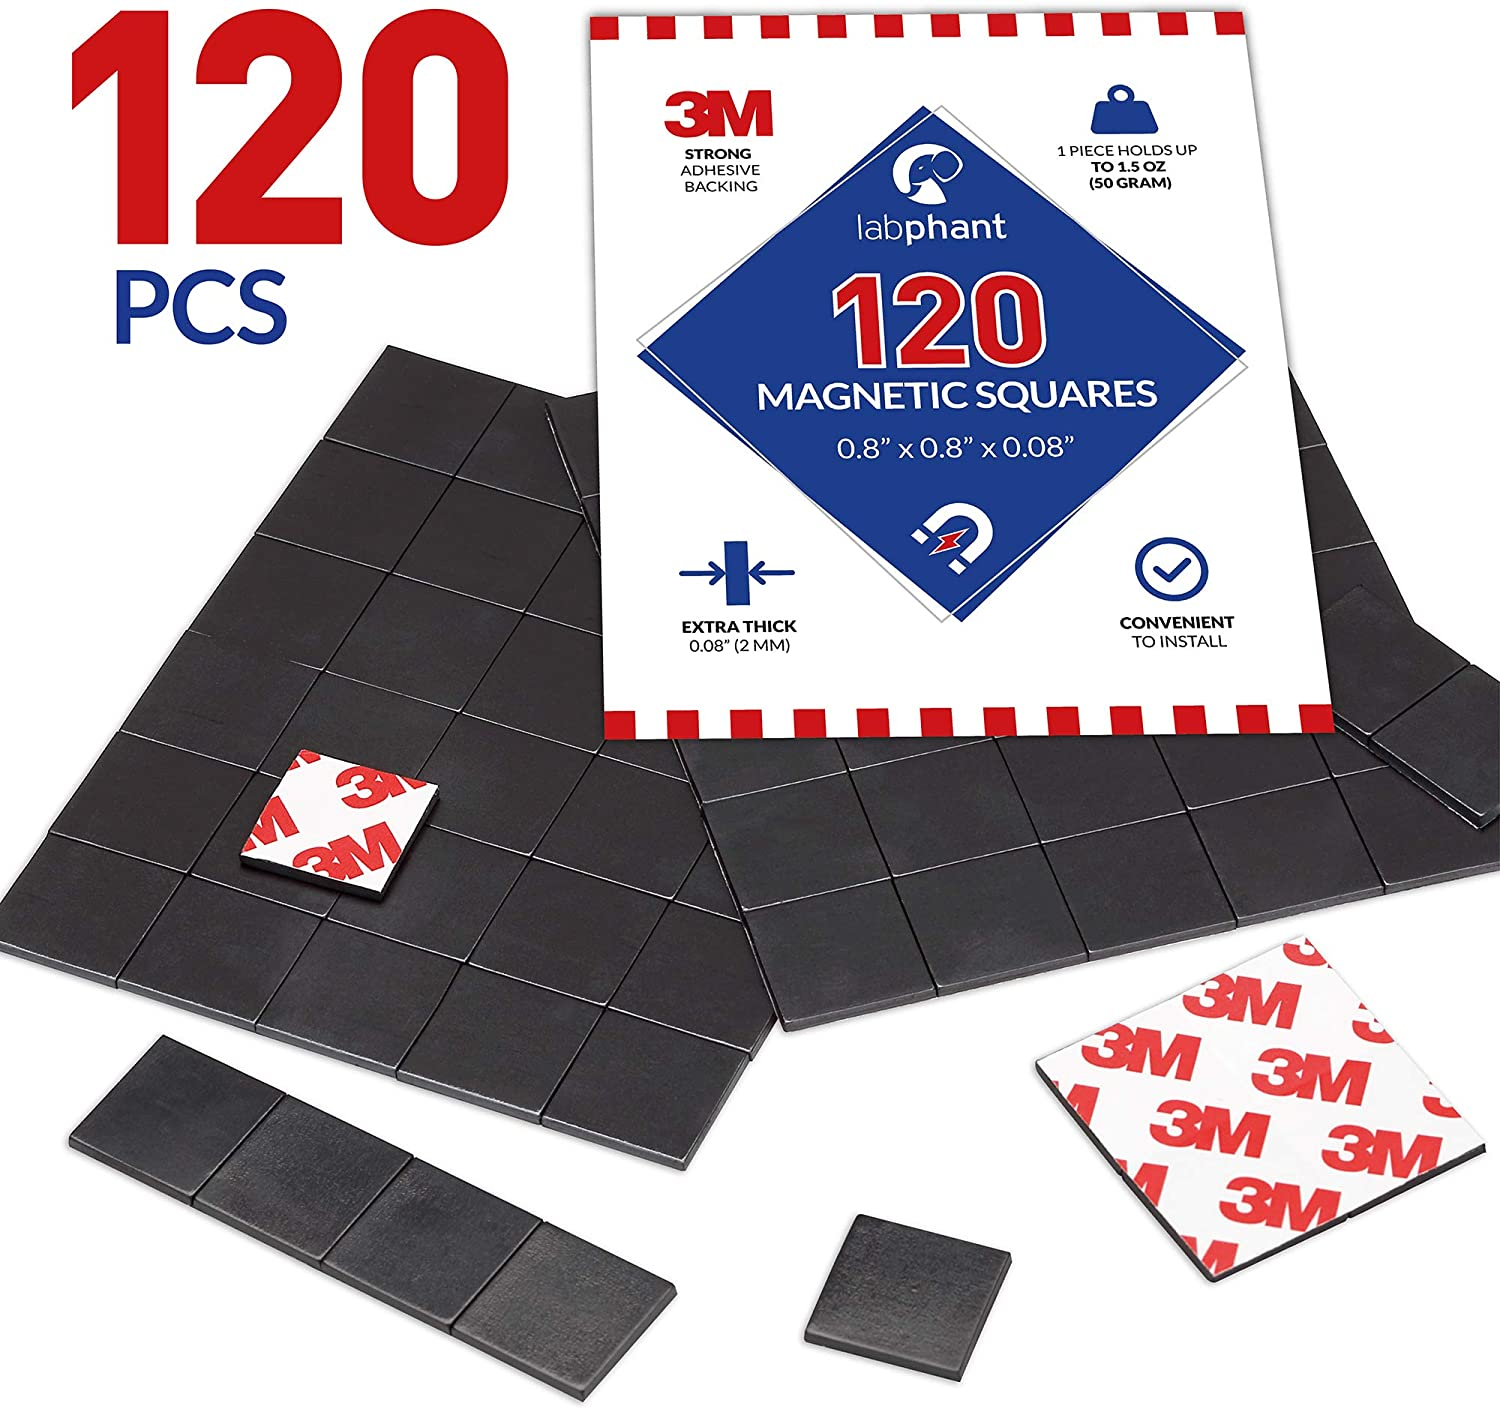 Magnetic Squares, 120 Pieces Magnet Squares (Each 20 x 20 x 2mm) on 4 Tape Sheets, with 3M Strong Adhesive Backing. Perfect for DIY, Art Projects, whiteboards & Fridge Organization (120 Pieces)